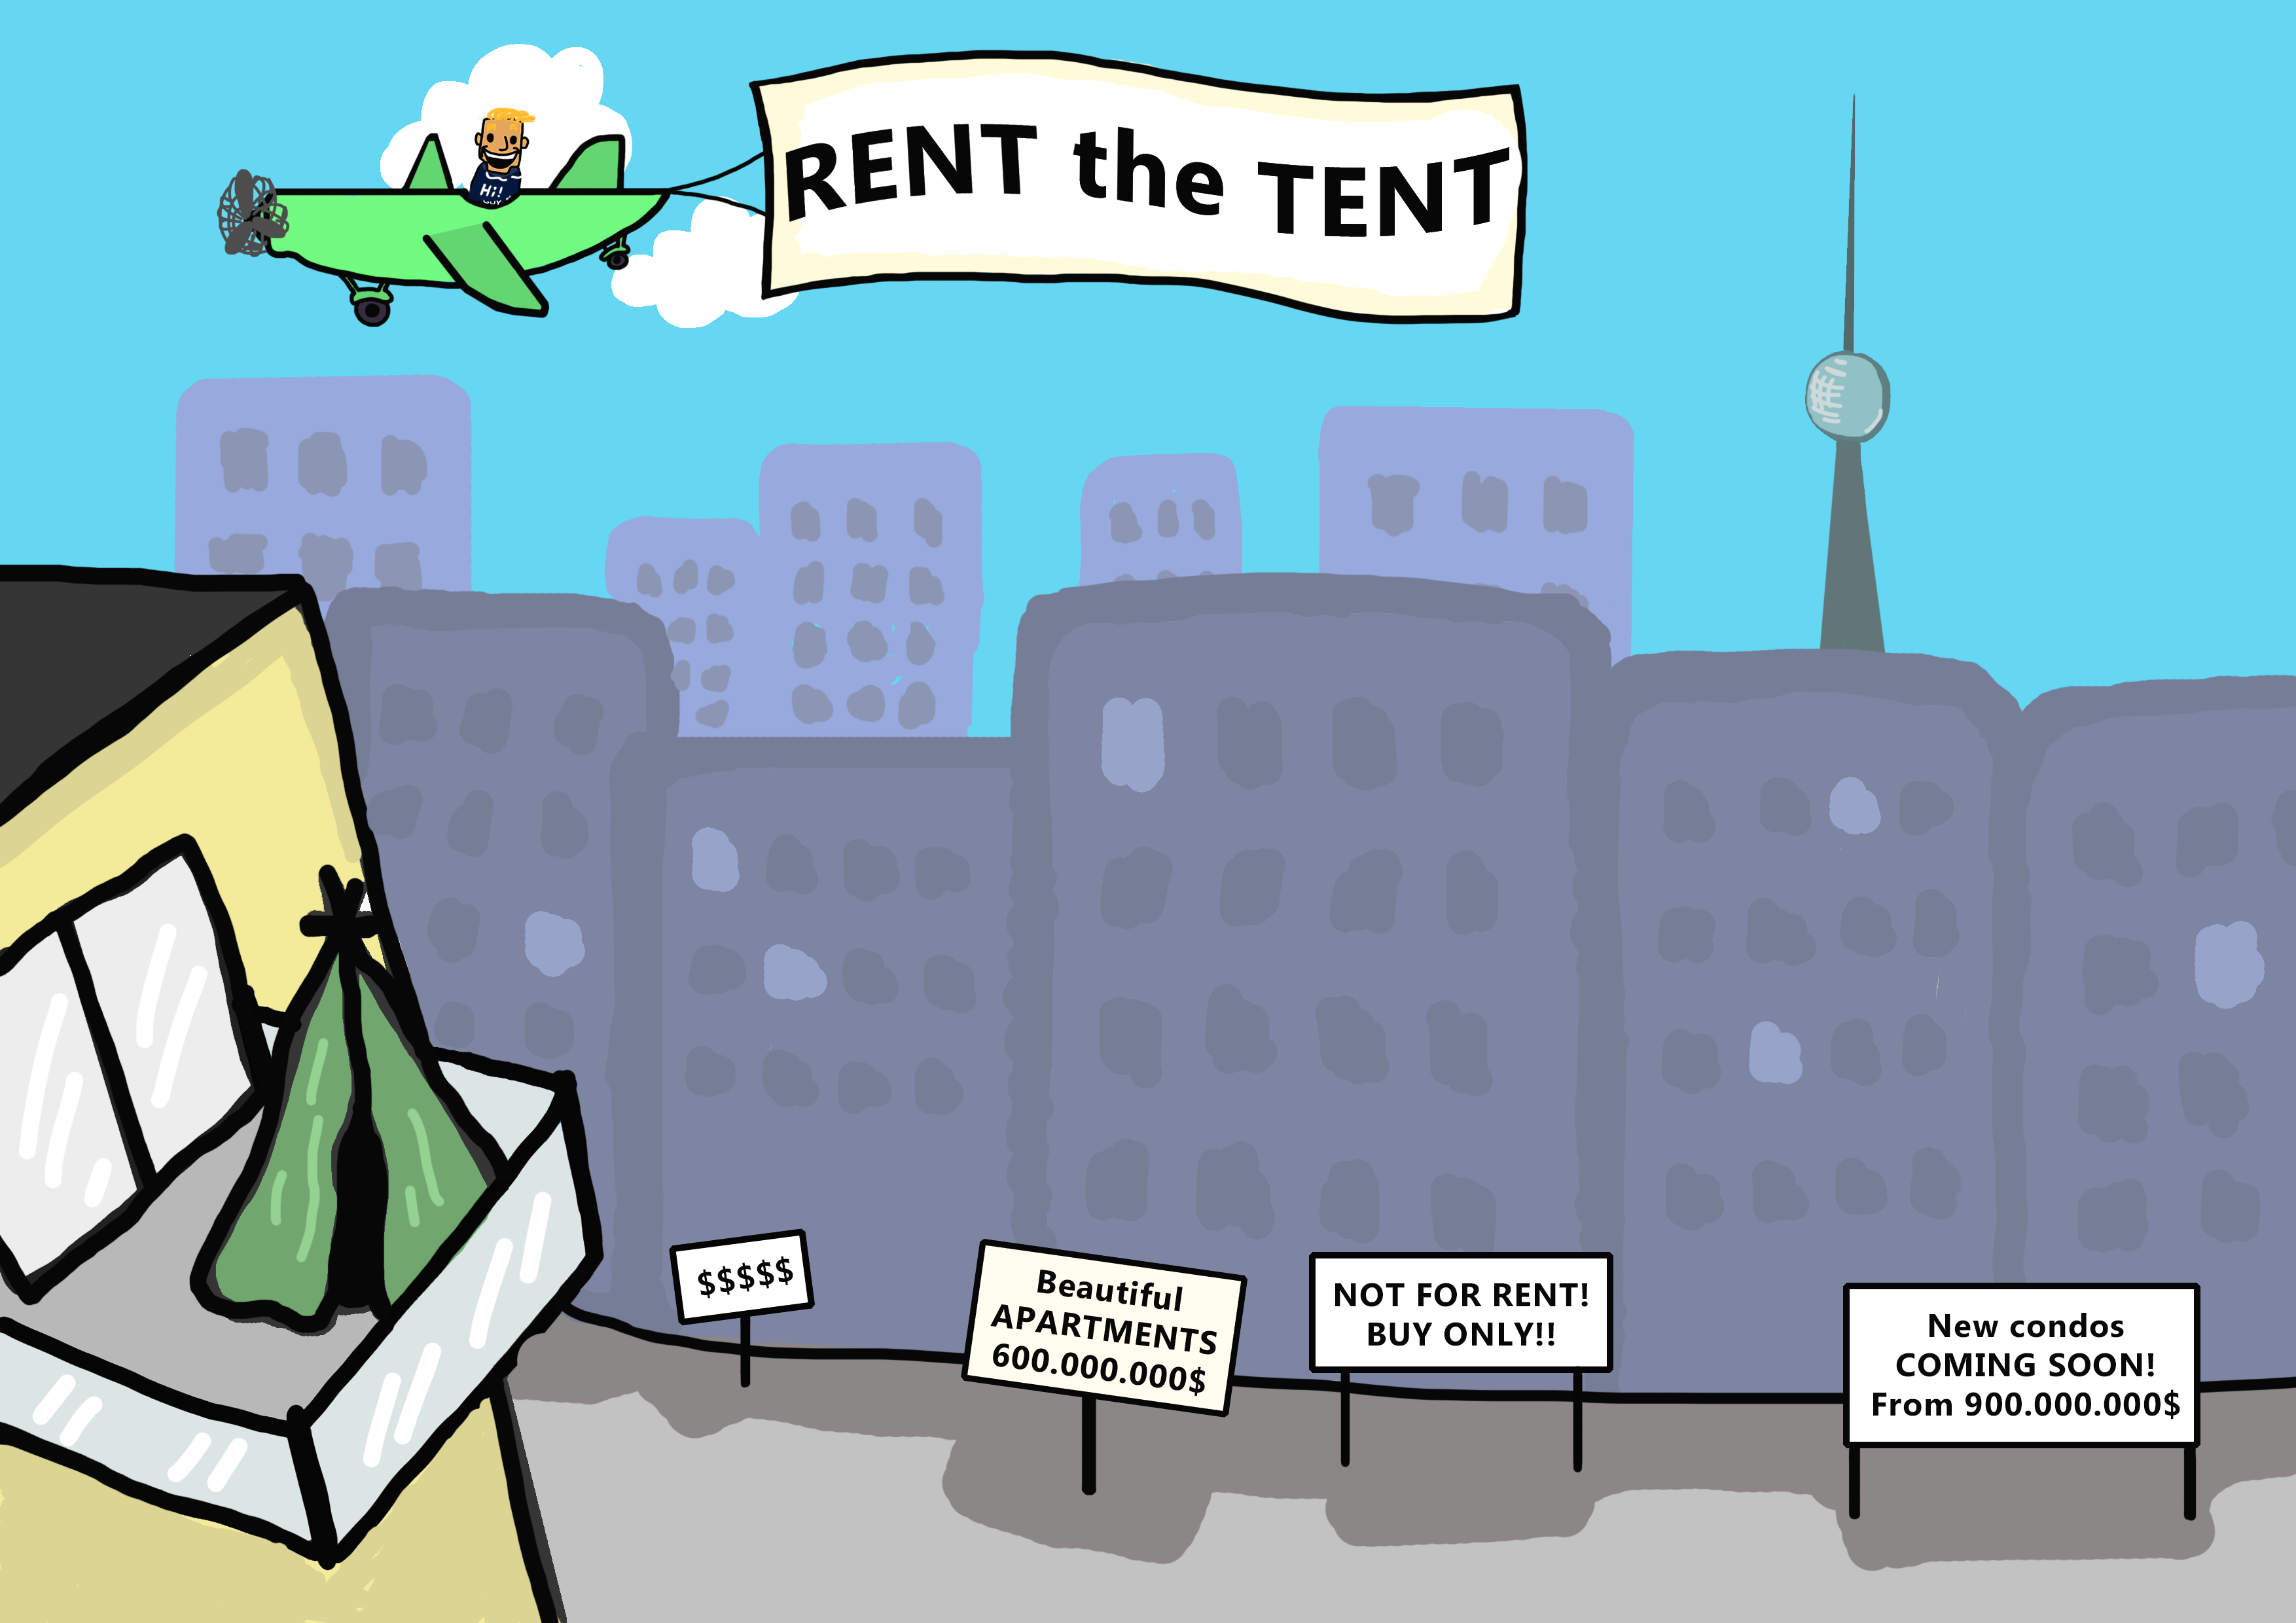 RENT the TENT